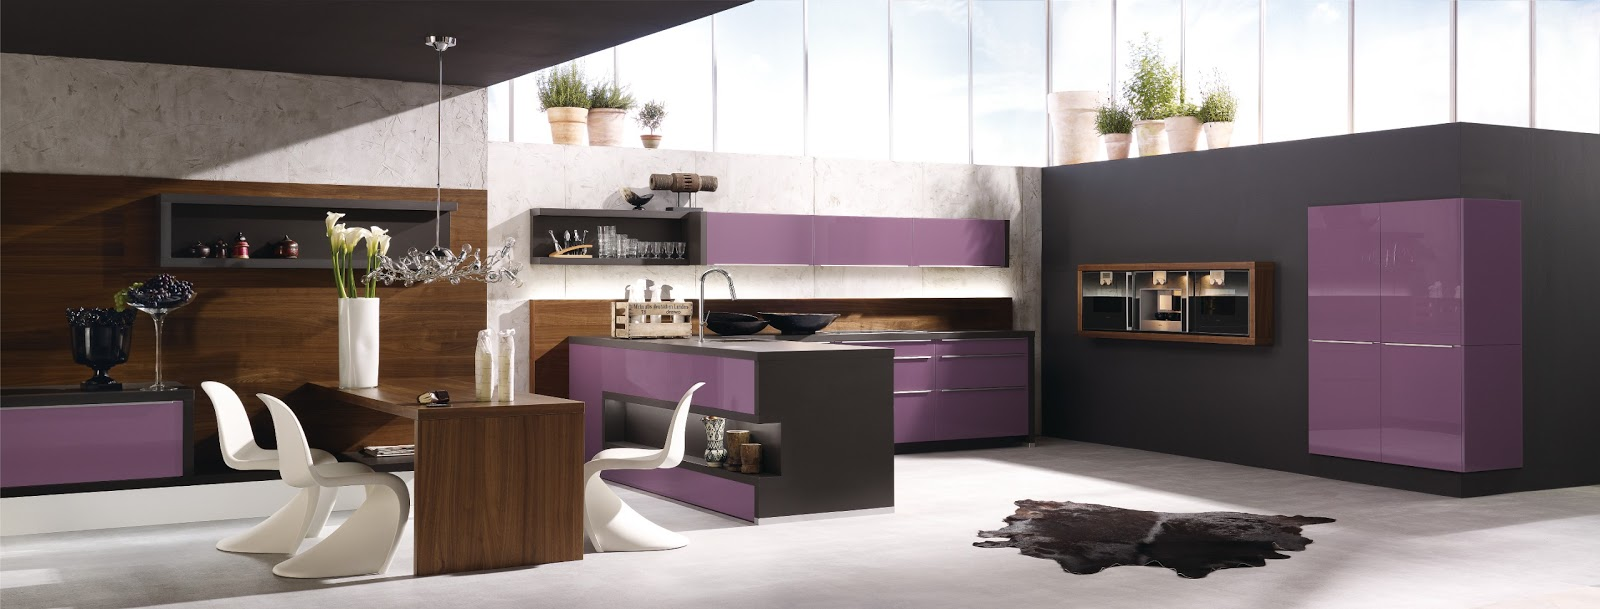 Id e d co for Cuisine designe moderne